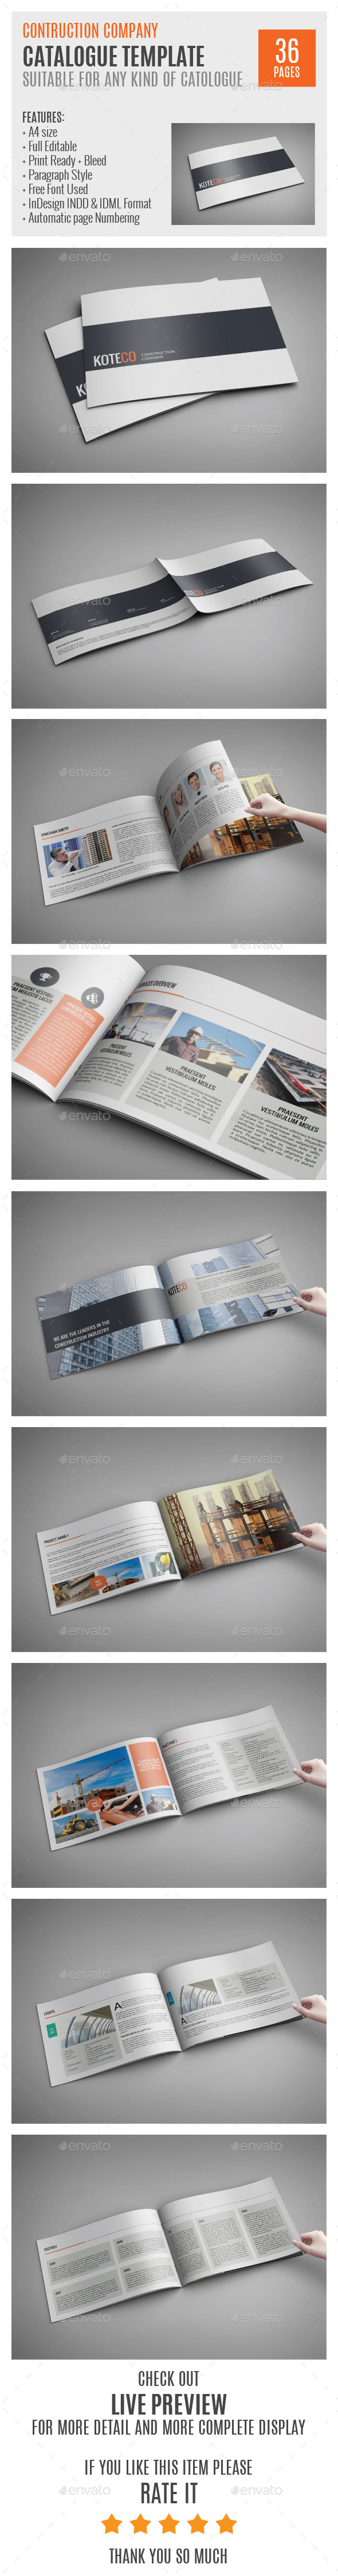 Construction Company A4 Profile Template 0006 InDesign INDD Branding Stationary O Available Here